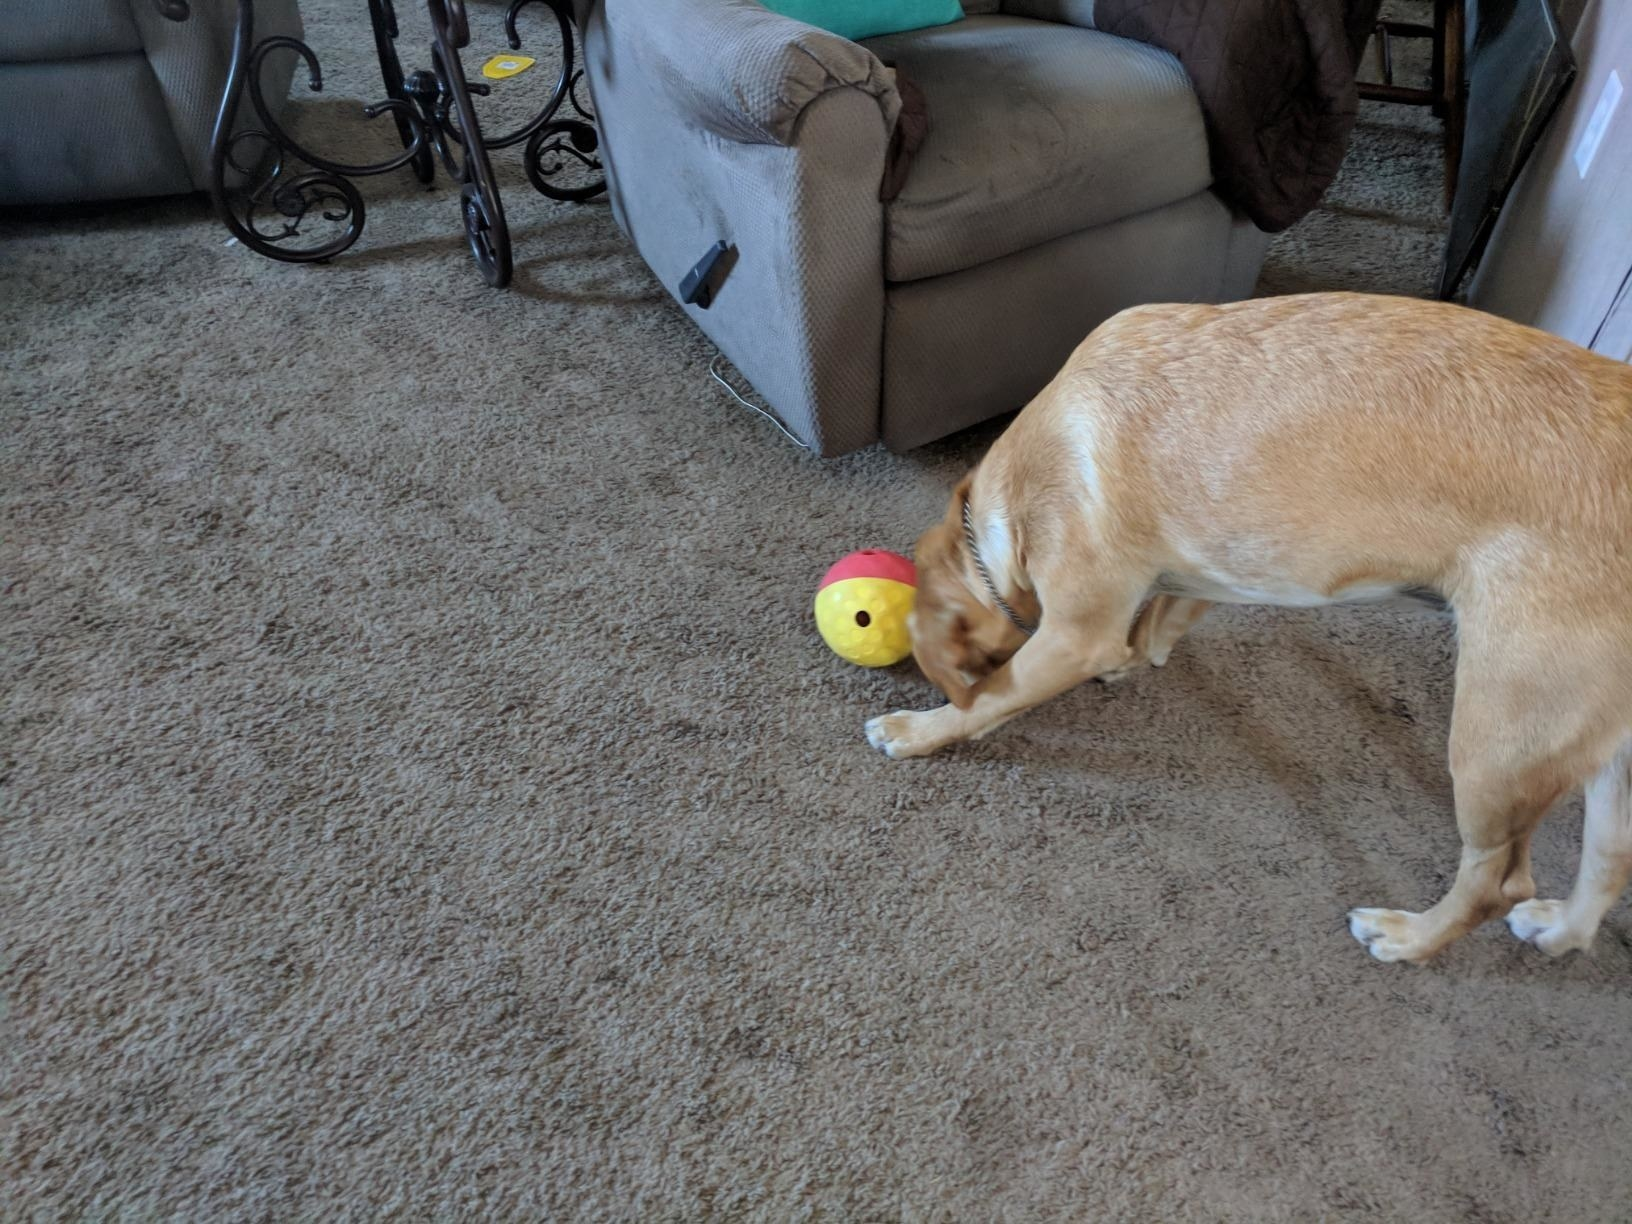 The treat ball, which is red and yellow, and has two small holes to dispense treats as dogs roll it